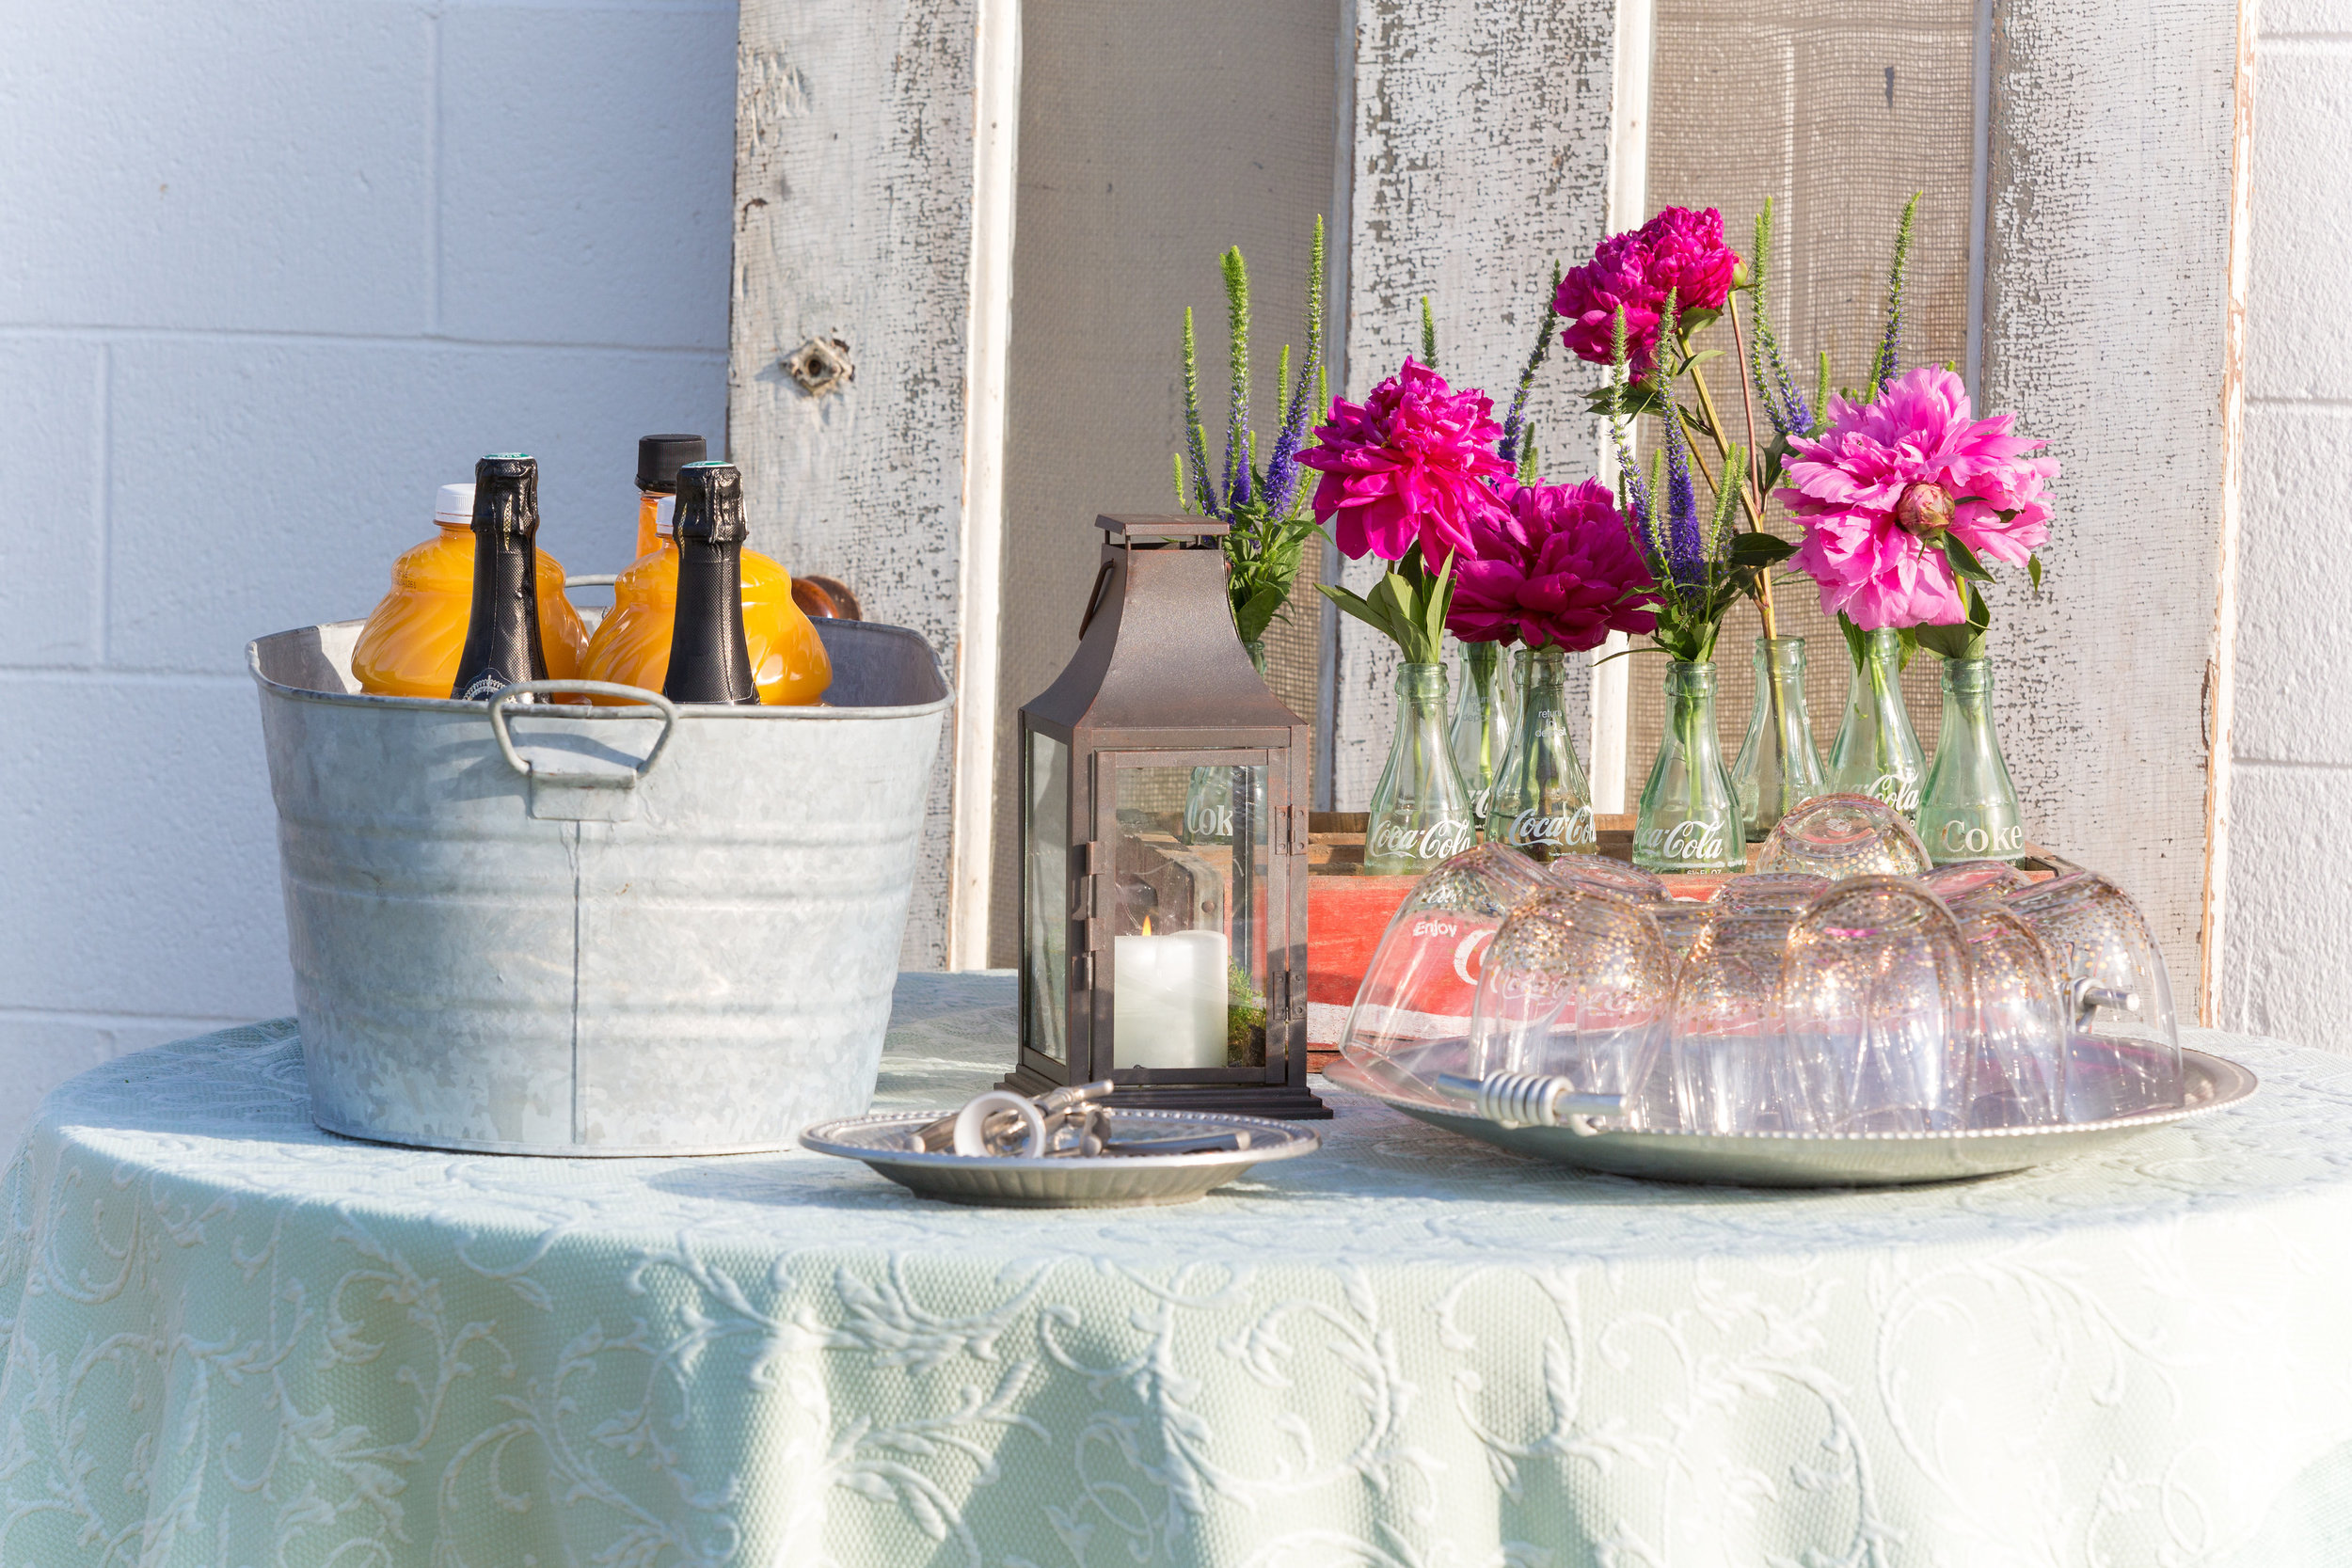 A Milkhouse Party outdoor drink display